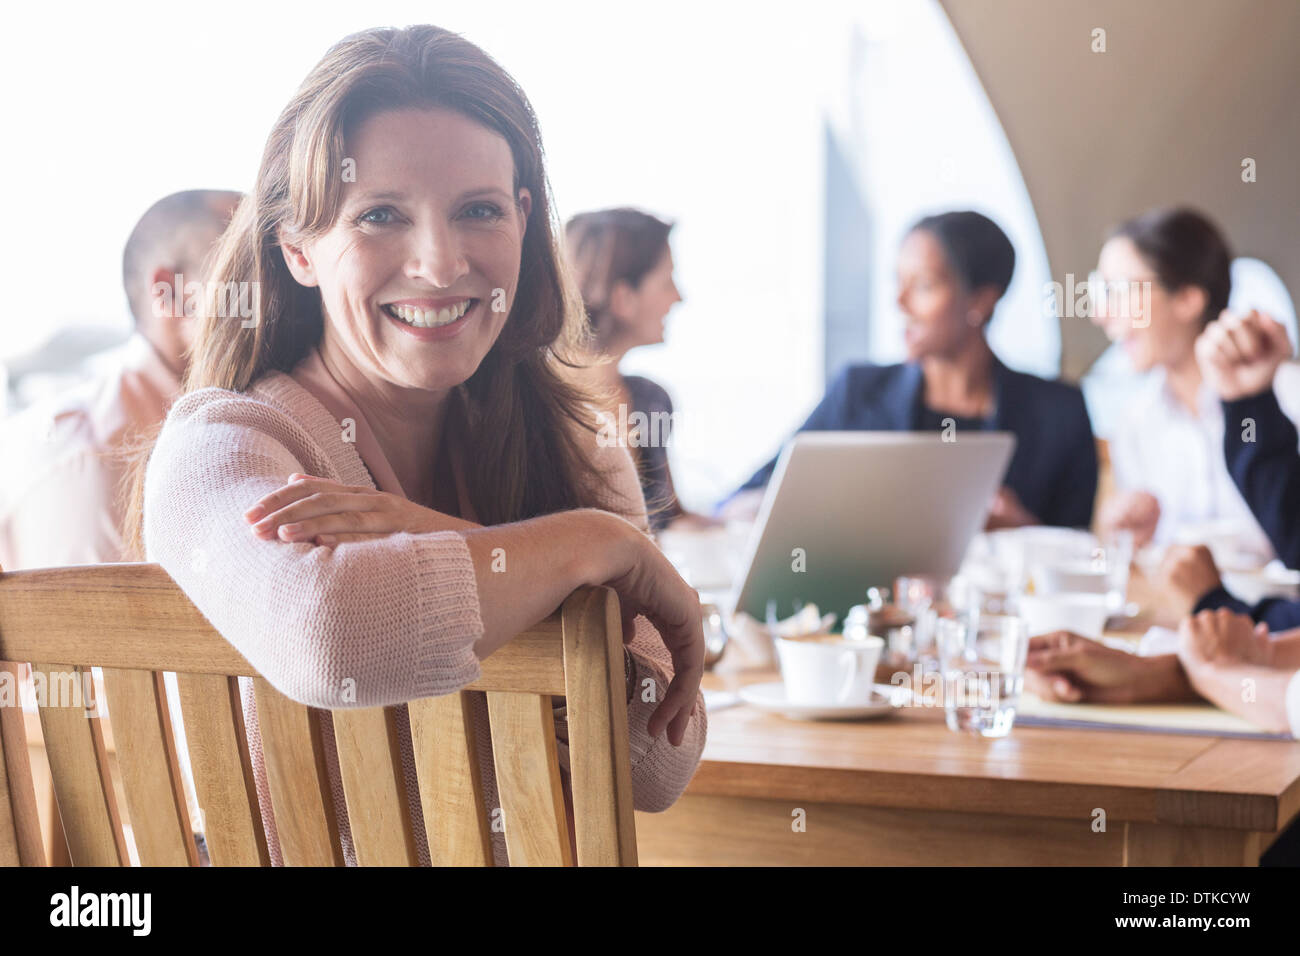 Businesswoman smiling in meeting - Stock Image